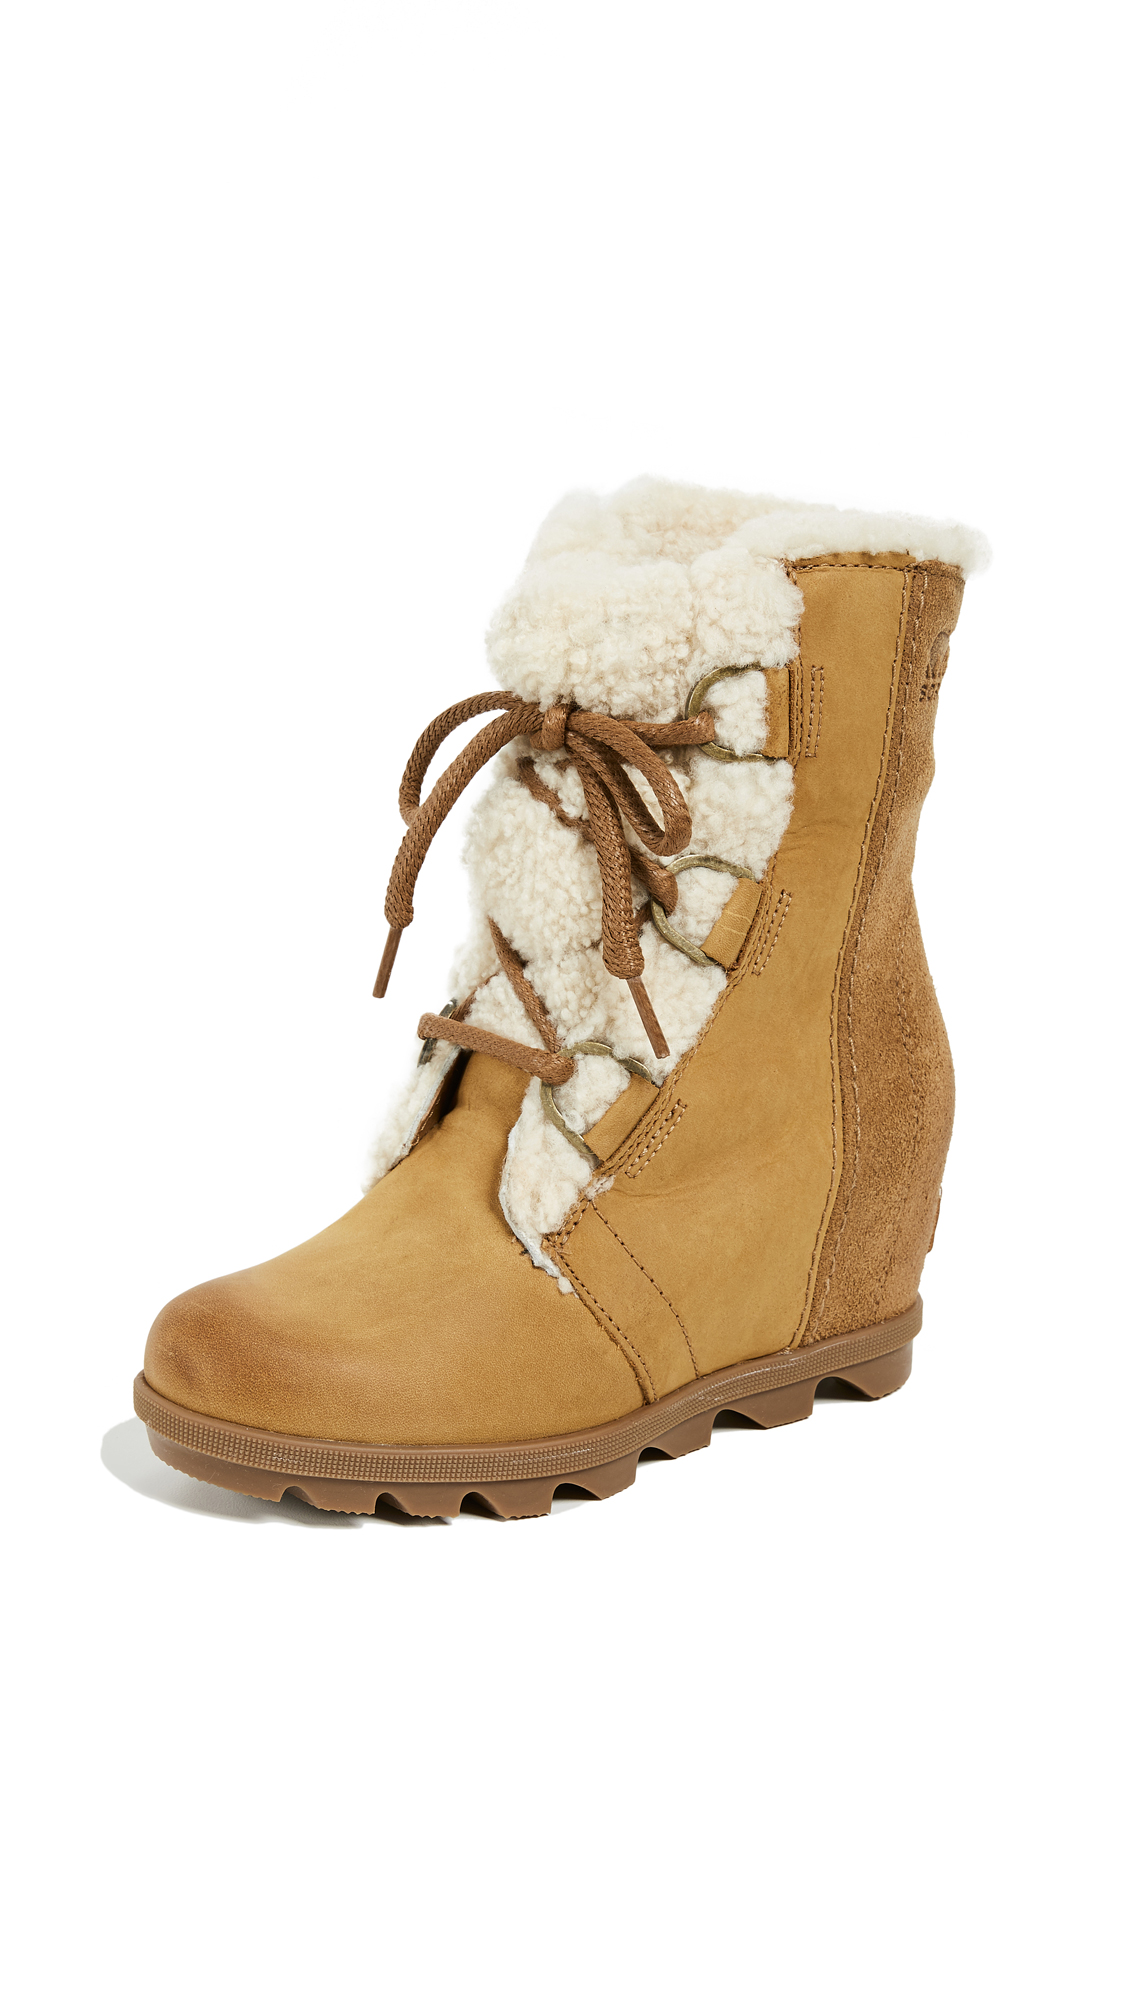 Sorel Joan Of Arctic Wedge Ii Lux Boots Shoes Online